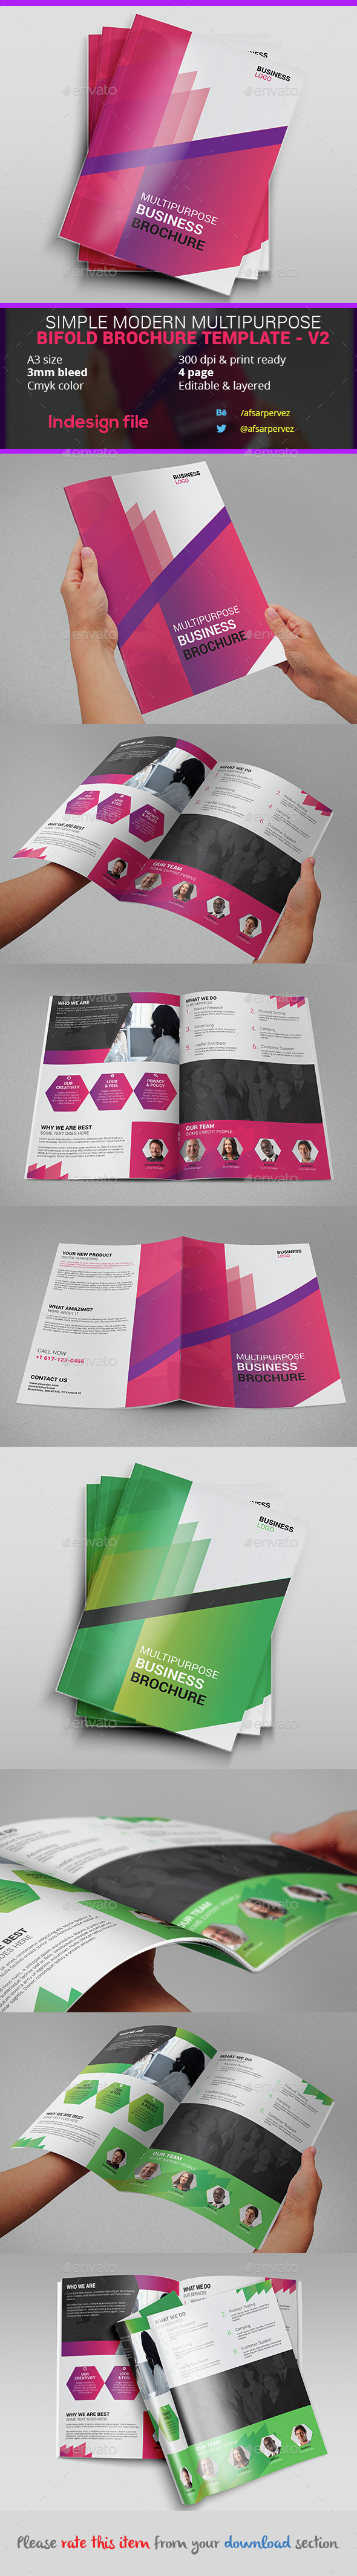 Simple Modern Multipurpose Bifold Brochure Template – V2 - Corporate Brochures